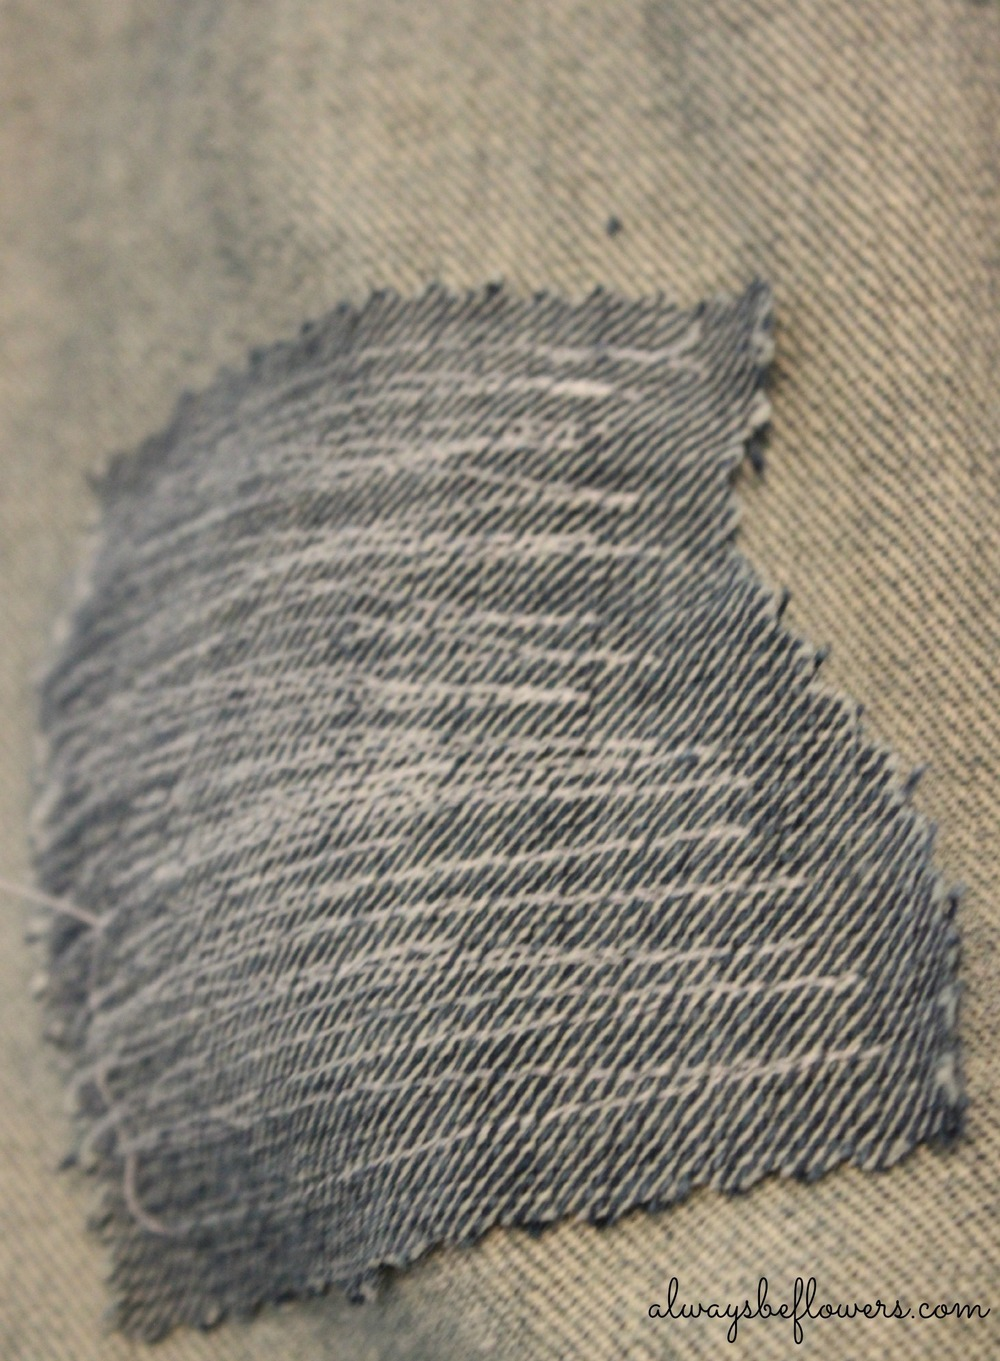 Detail of a denim patch.